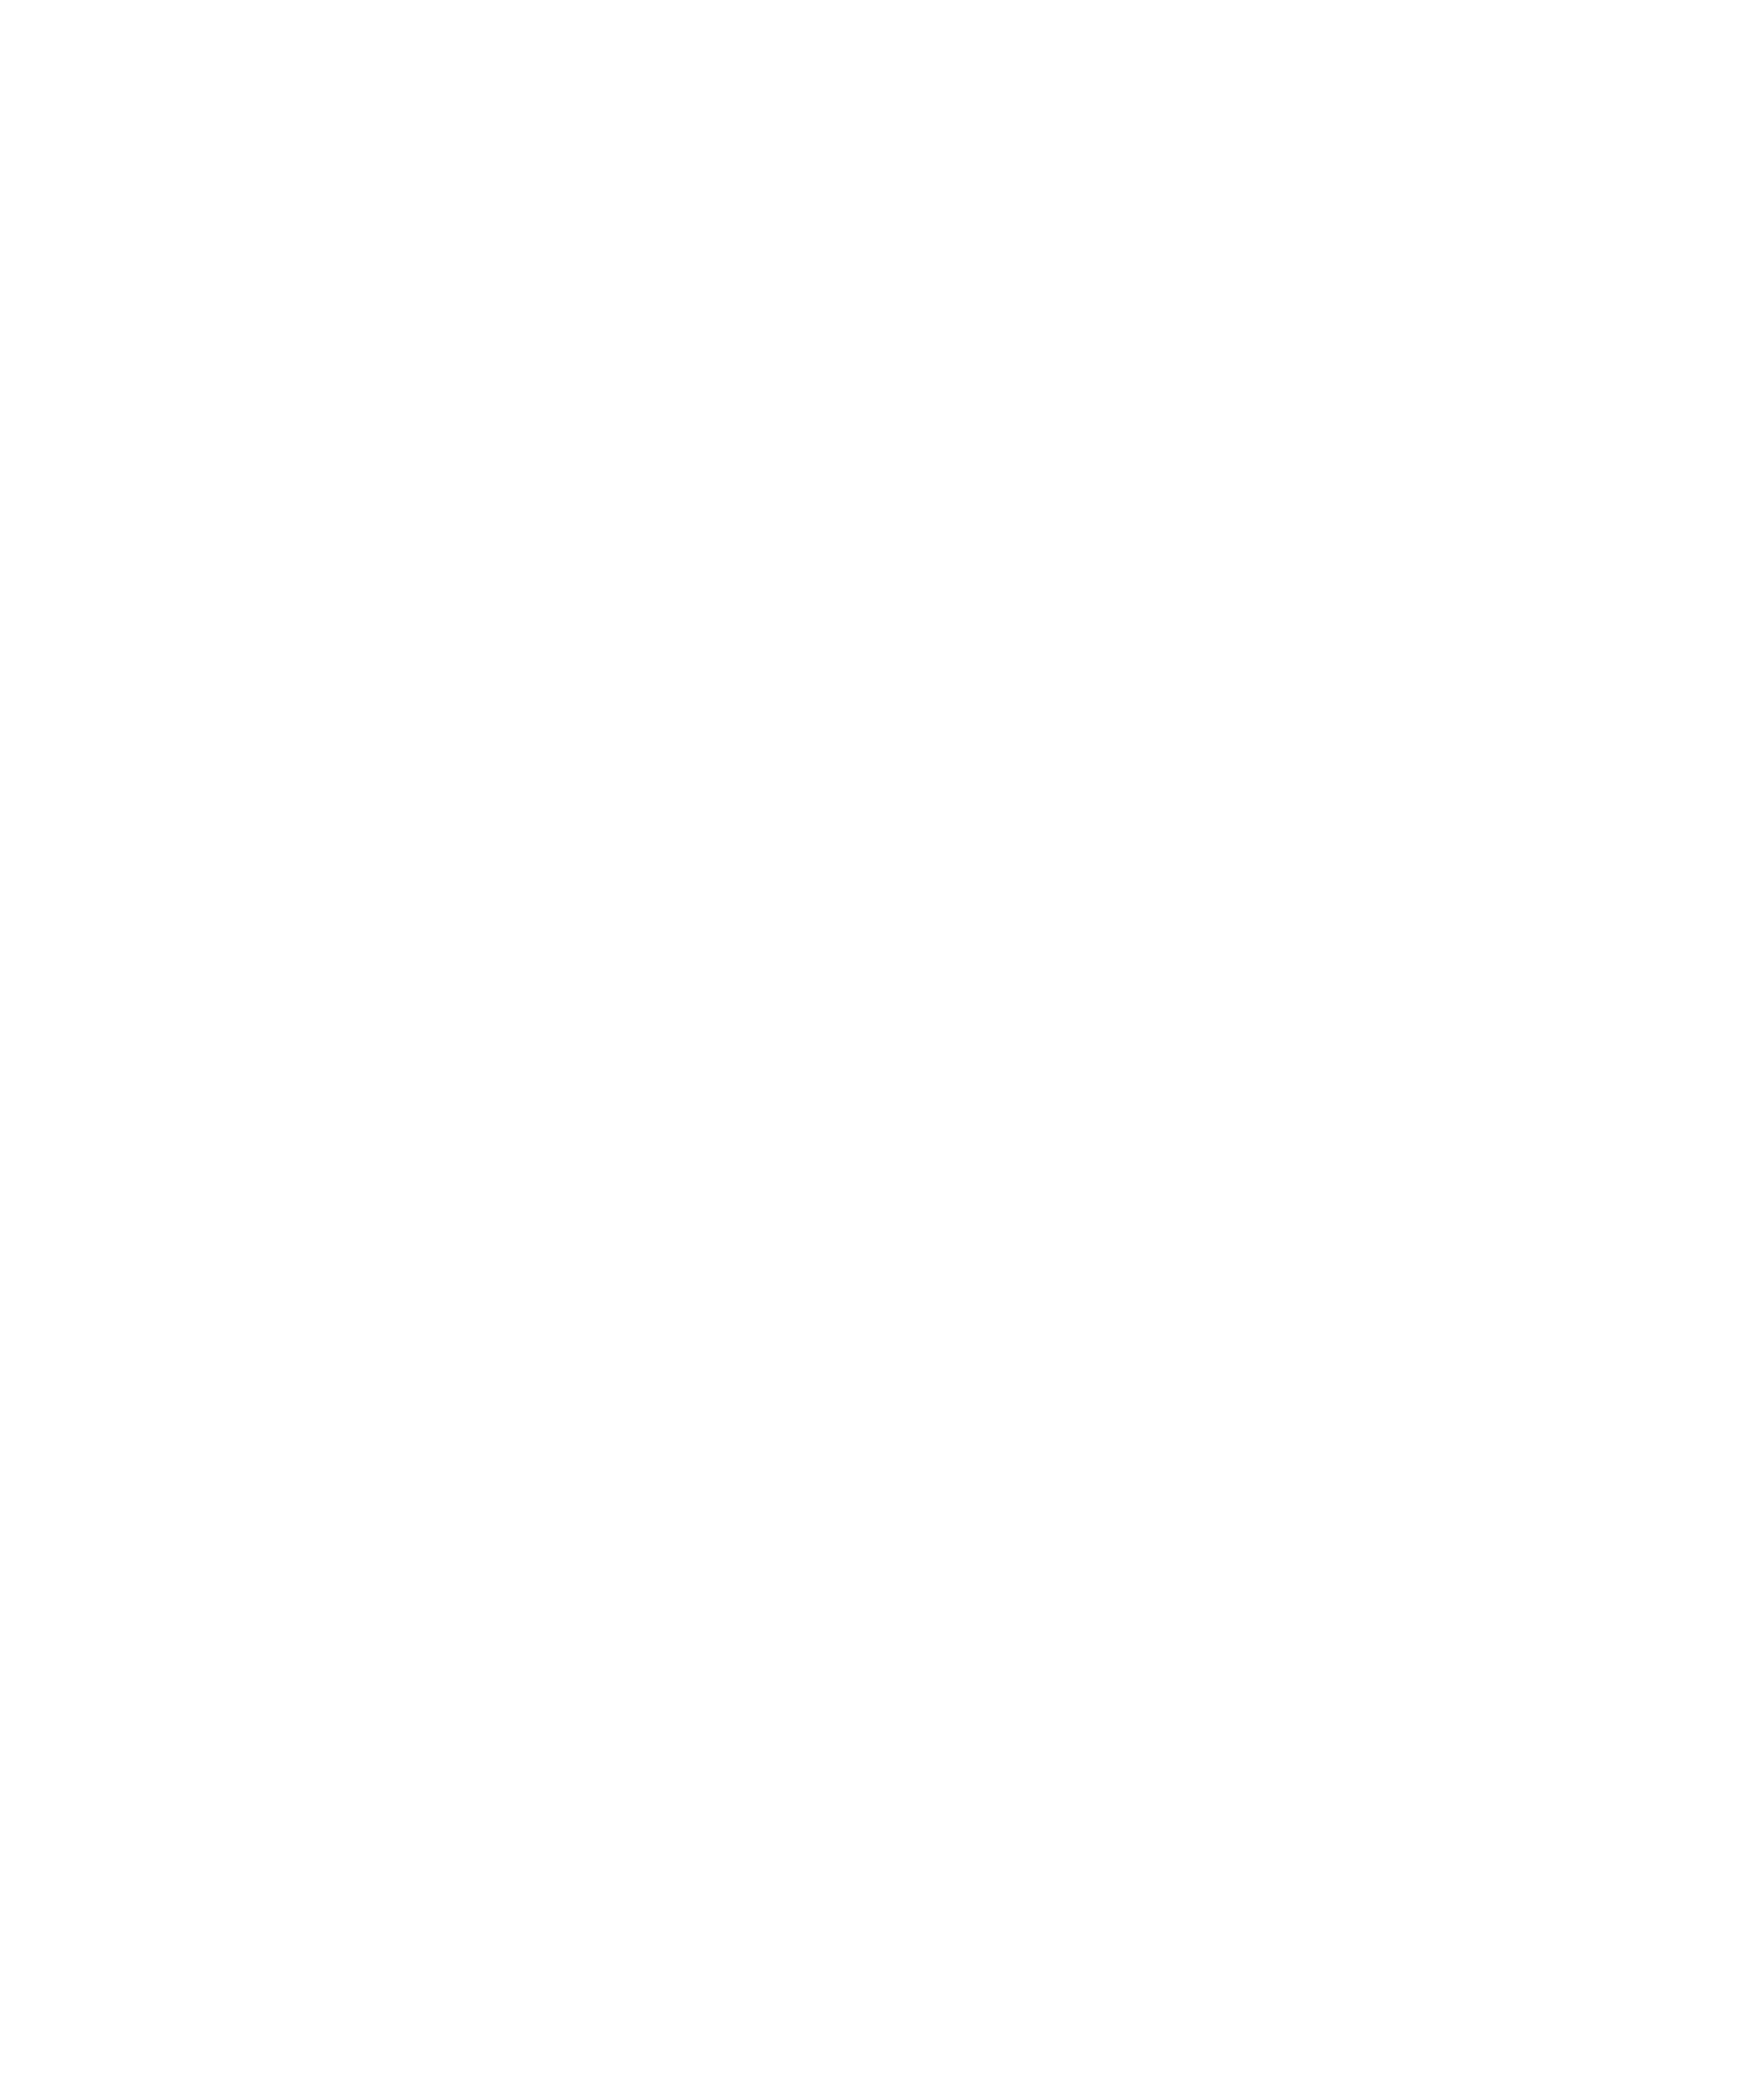 2020 Travelers' Choice Tripadvisor Badge